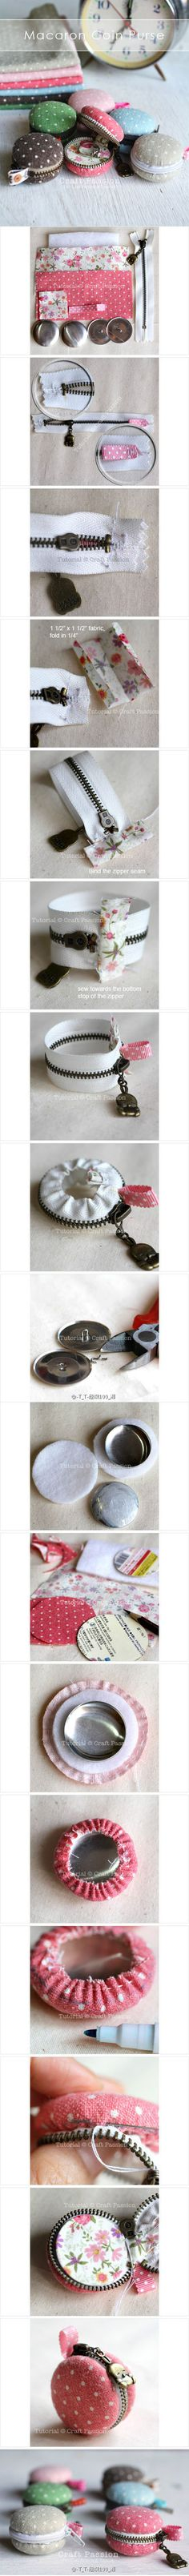 Macaron Coin purse tutorial.  This one is best as ring box or medicine box.... too small for coin purse.